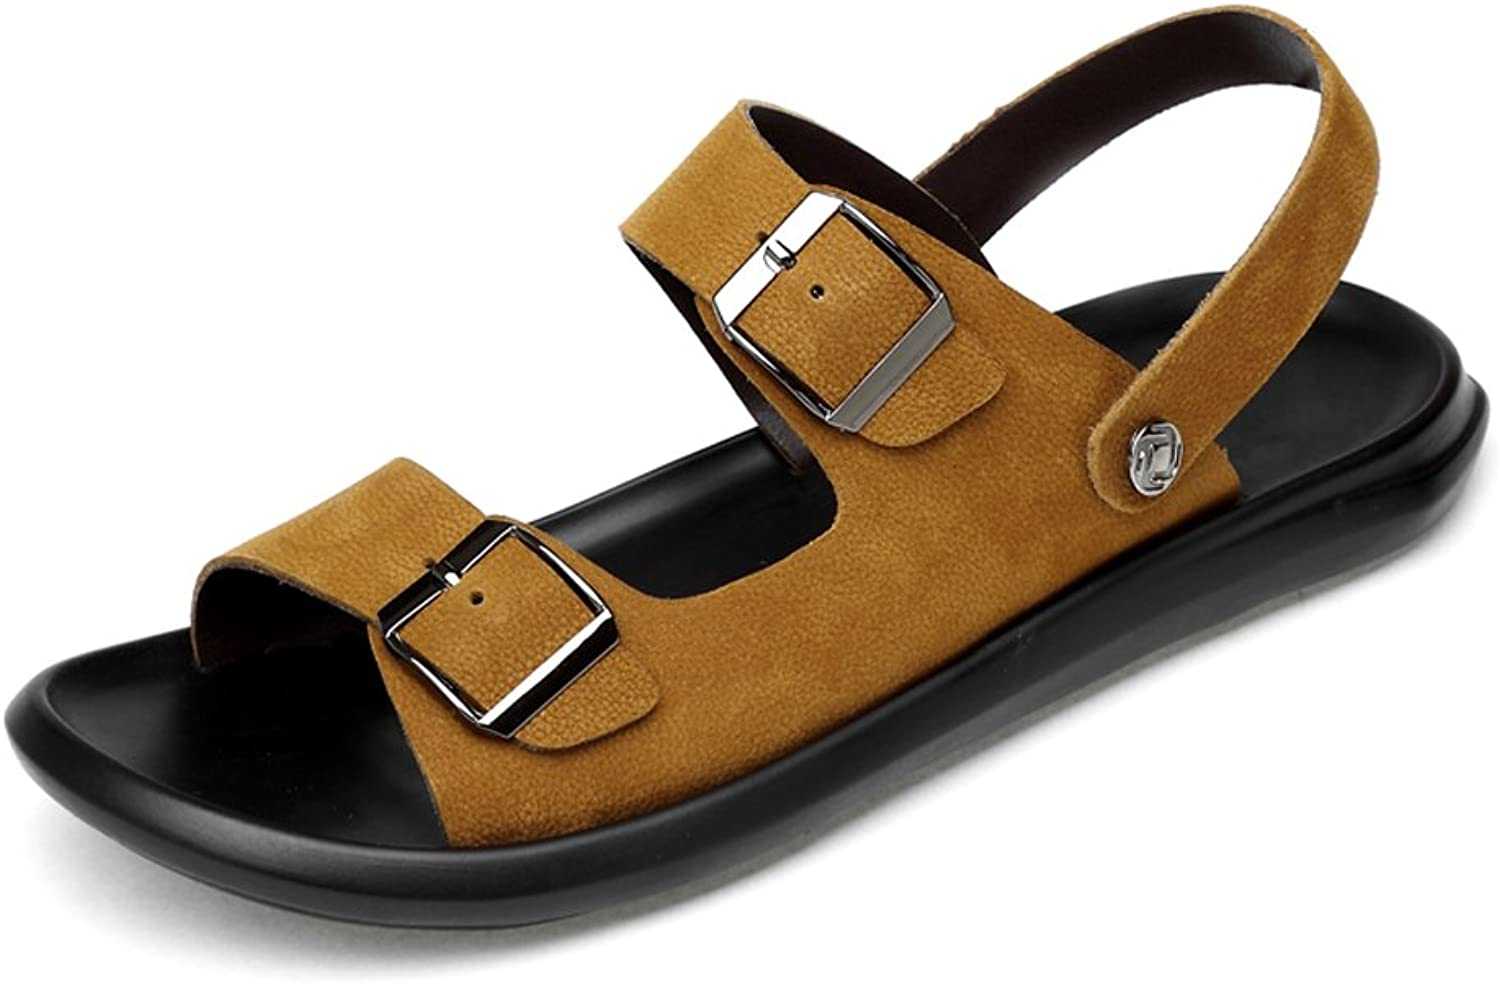 YEEWEN Fashion Summer Outdoor Casual Lightweight Men's Genuine Leather Beach Sandal, Comfort Elegant Belt Buckle Closed Slippers Non-slip Soft Sole Adjustable Backless (color   Brown, Size   9 UK)